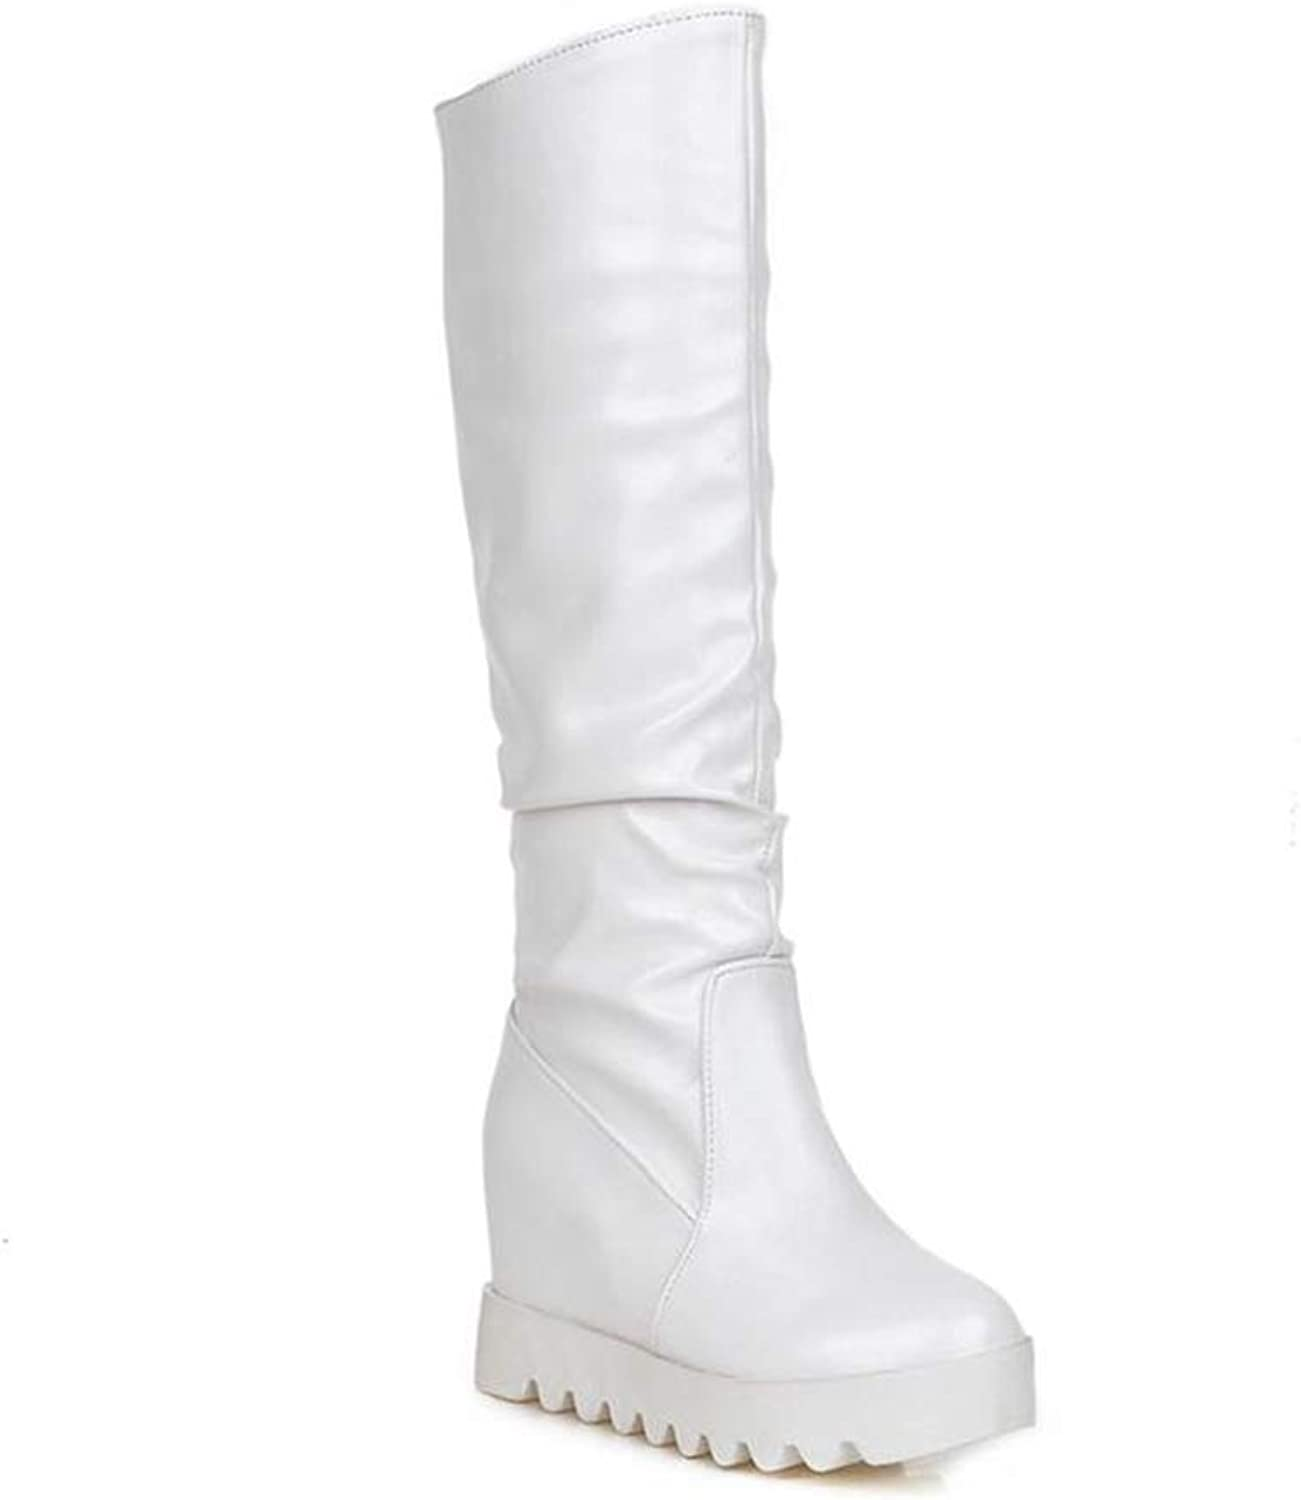 T-JULY Fashion Mid Calf Boots for Women Winter Solid Slip On Boots Height Increasing Large Size 34-43